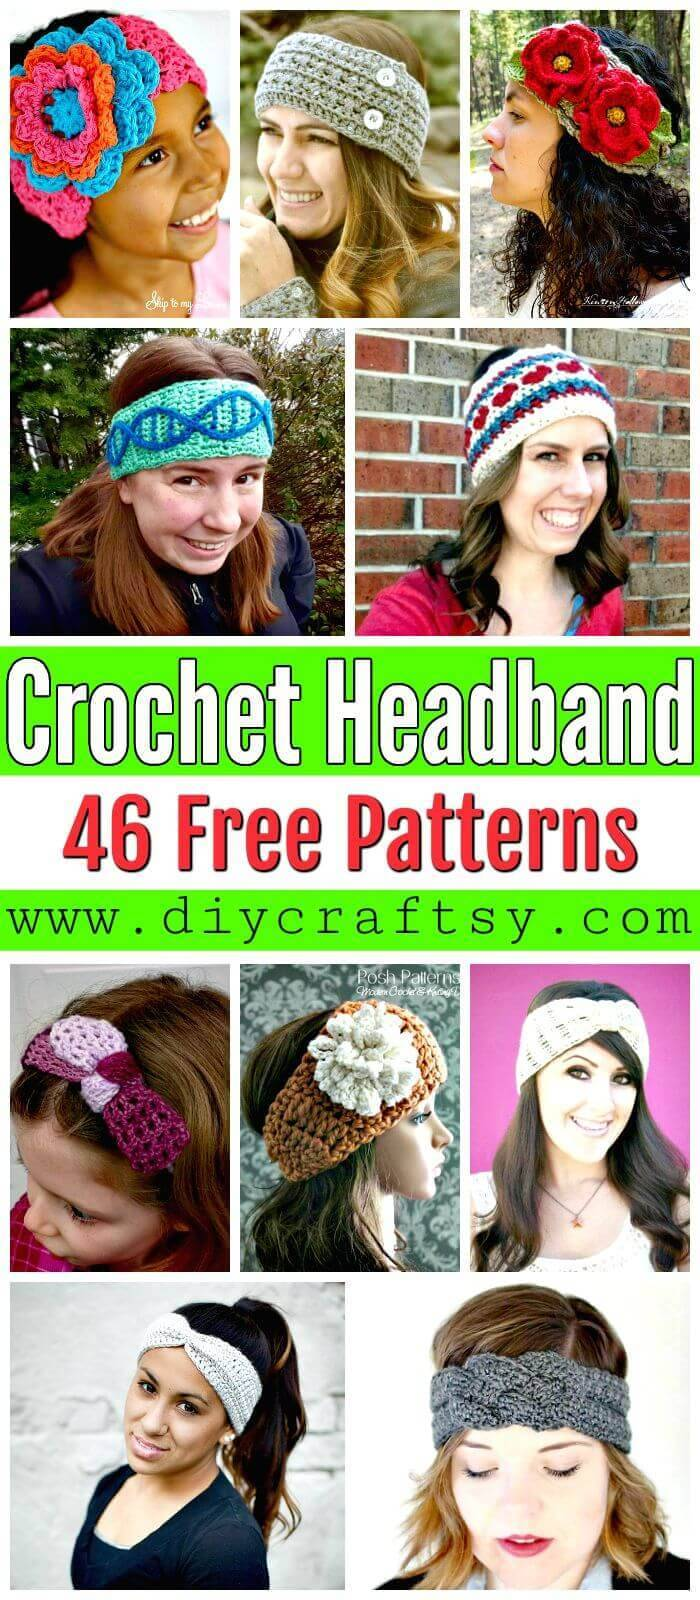 Crochet Headband Patterns - DIY Crafts - Free Crochet Patterns